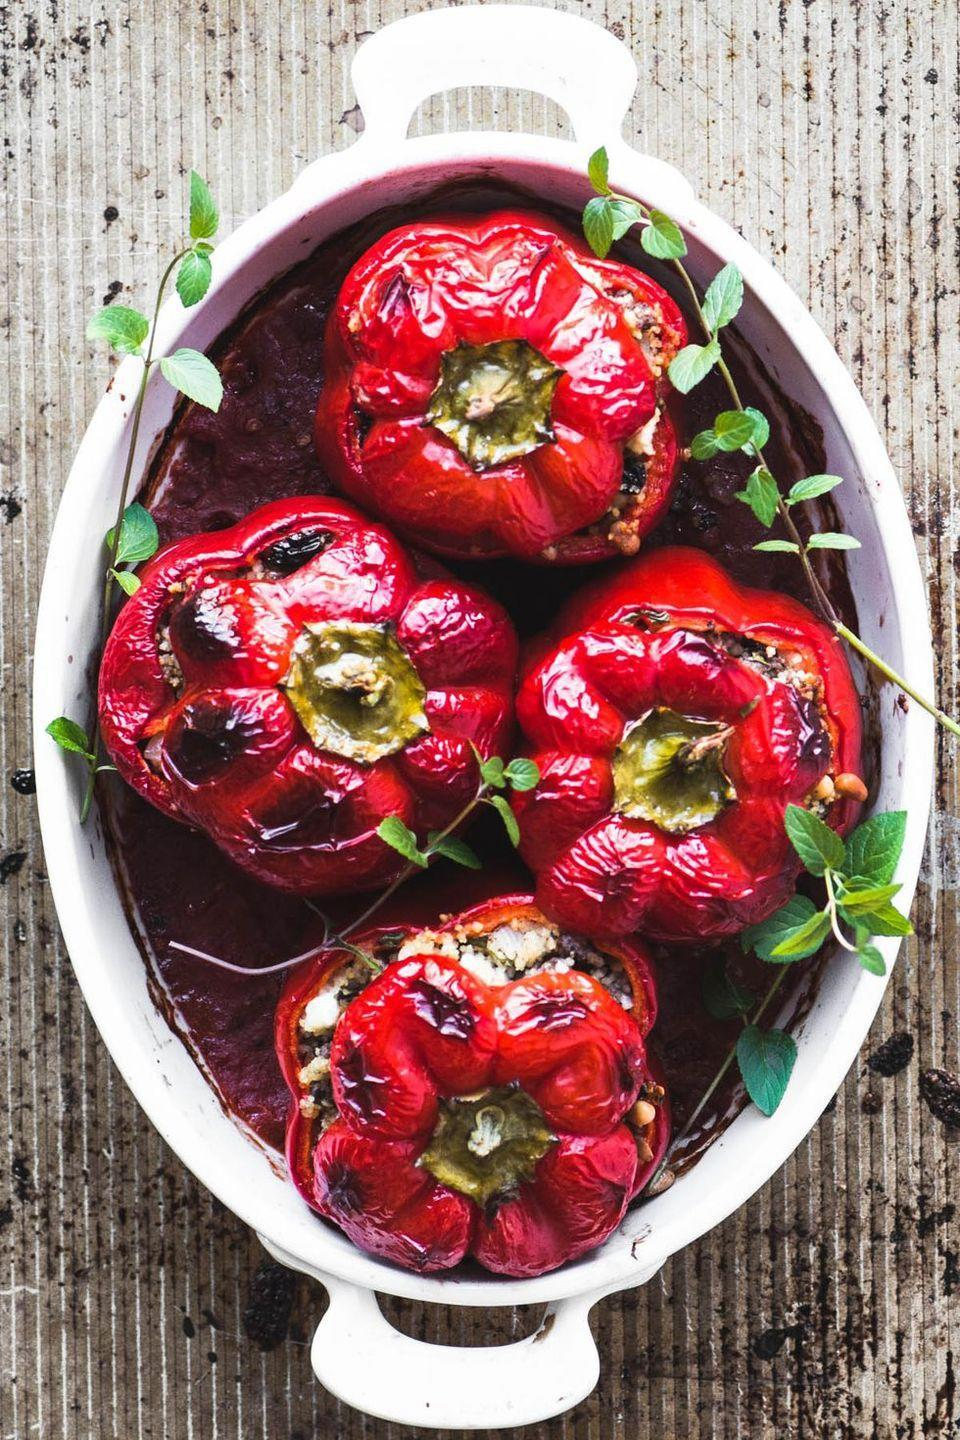 "<p>Classic stuffed peppers, but with an exotic makeover! And we love the look of them. Lightly spiced with cinnamon, allspice, cardamom, and nutmeg, these are bound to taste just as good as they look!</p><p>Get the <a href=""https://theviewfromgreatisland.com/spiced-lamb-and-couscous-stuffed-peppers-recipe/"" rel=""nofollow noopener"" target=""_blank"" data-ylk=""slk:Spiced Lamb & Couscous Stuffed Peppers"" class=""link rapid-noclick-resp"">Spiced Lamb & Couscous Stuffed Peppers</a> recipe.</p><p>Recipe from <a href=""https://theviewfromgreatisland.com/"" rel=""nofollow noopener"" target=""_blank"" data-ylk=""slk:The View From Great Island"" class=""link rapid-noclick-resp"">The View From Great Island</a>.</p>"